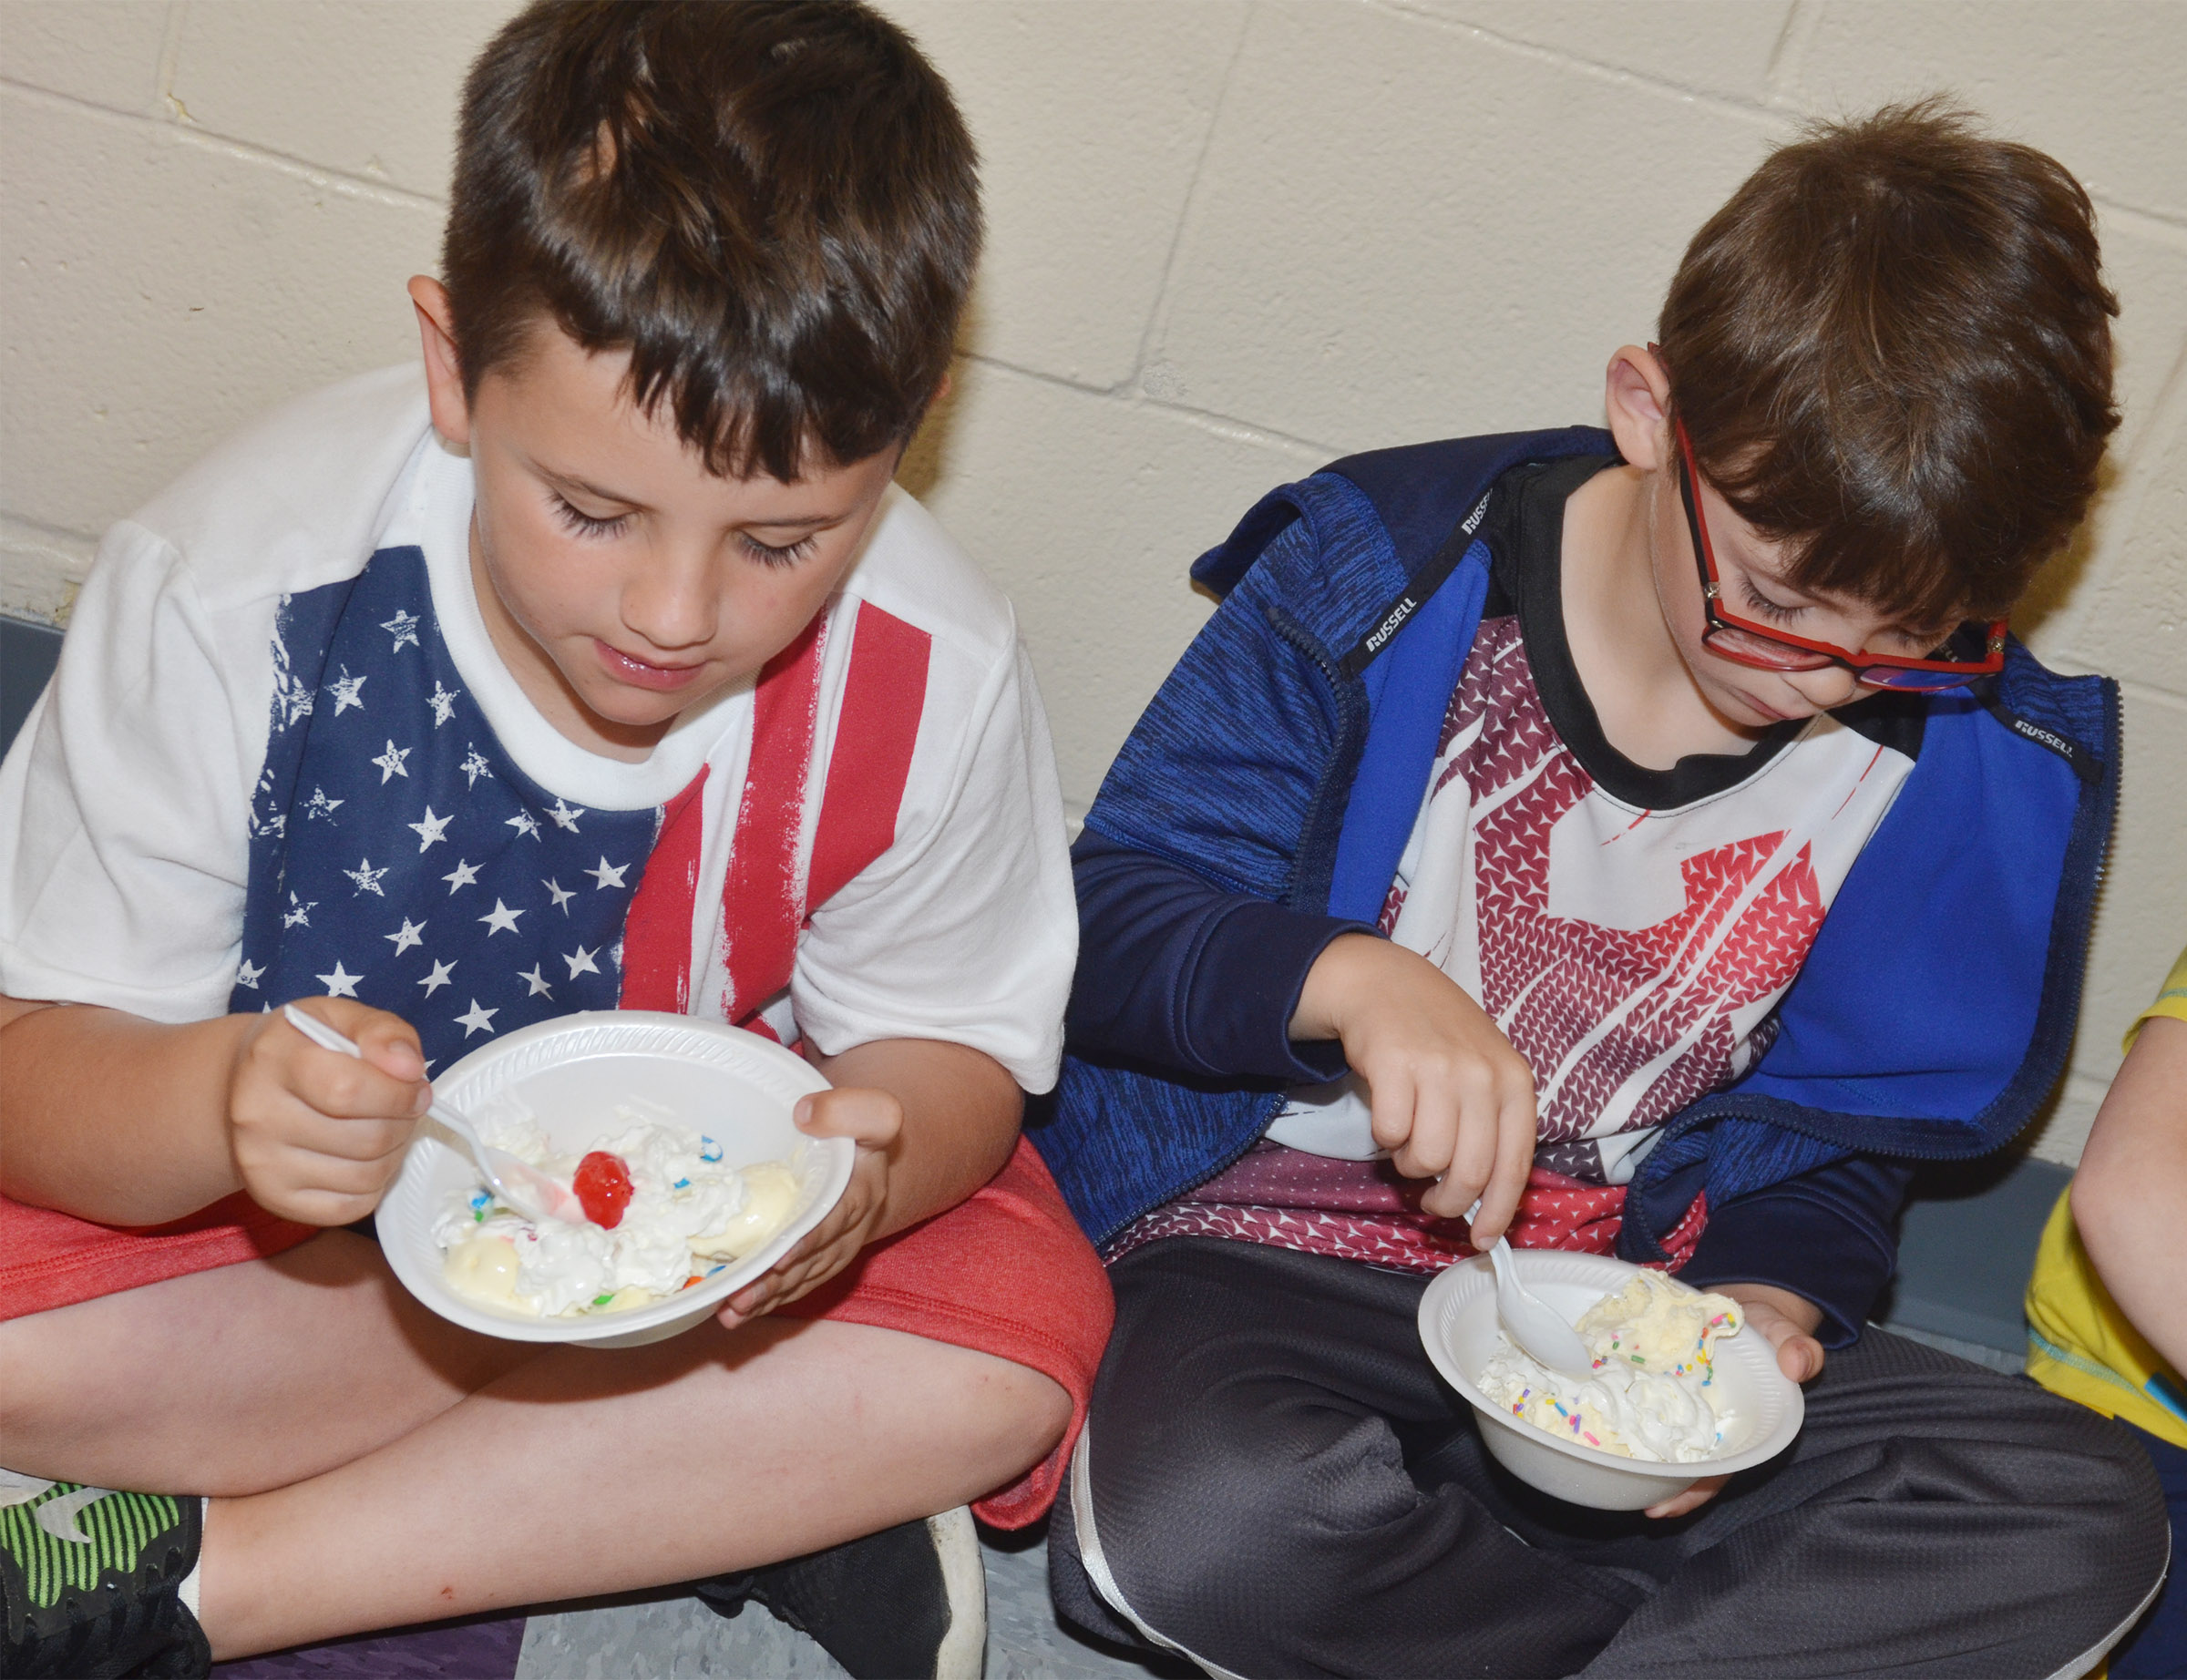 CES kindergarteners Casen Meredith, at left, and Bentley Shively enjoy their ice cream sundaes.